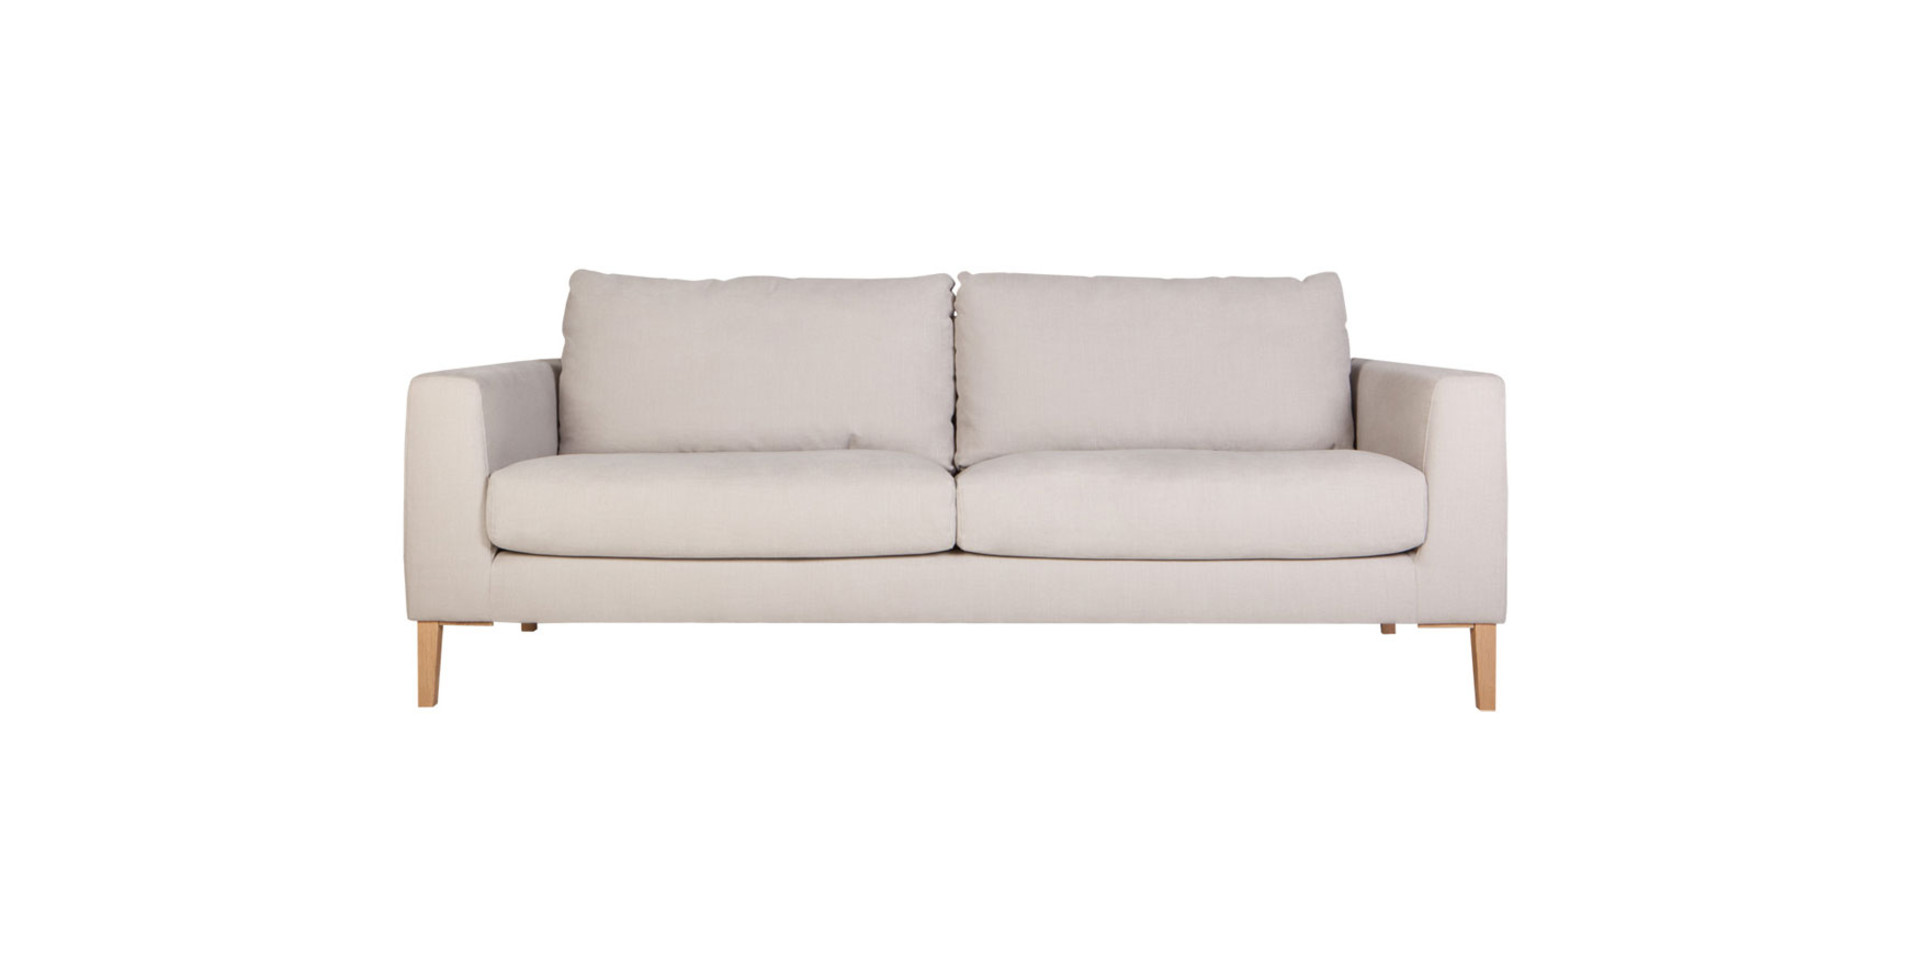 sits-malin-canape-3seater_caleido3790_light_beige_1